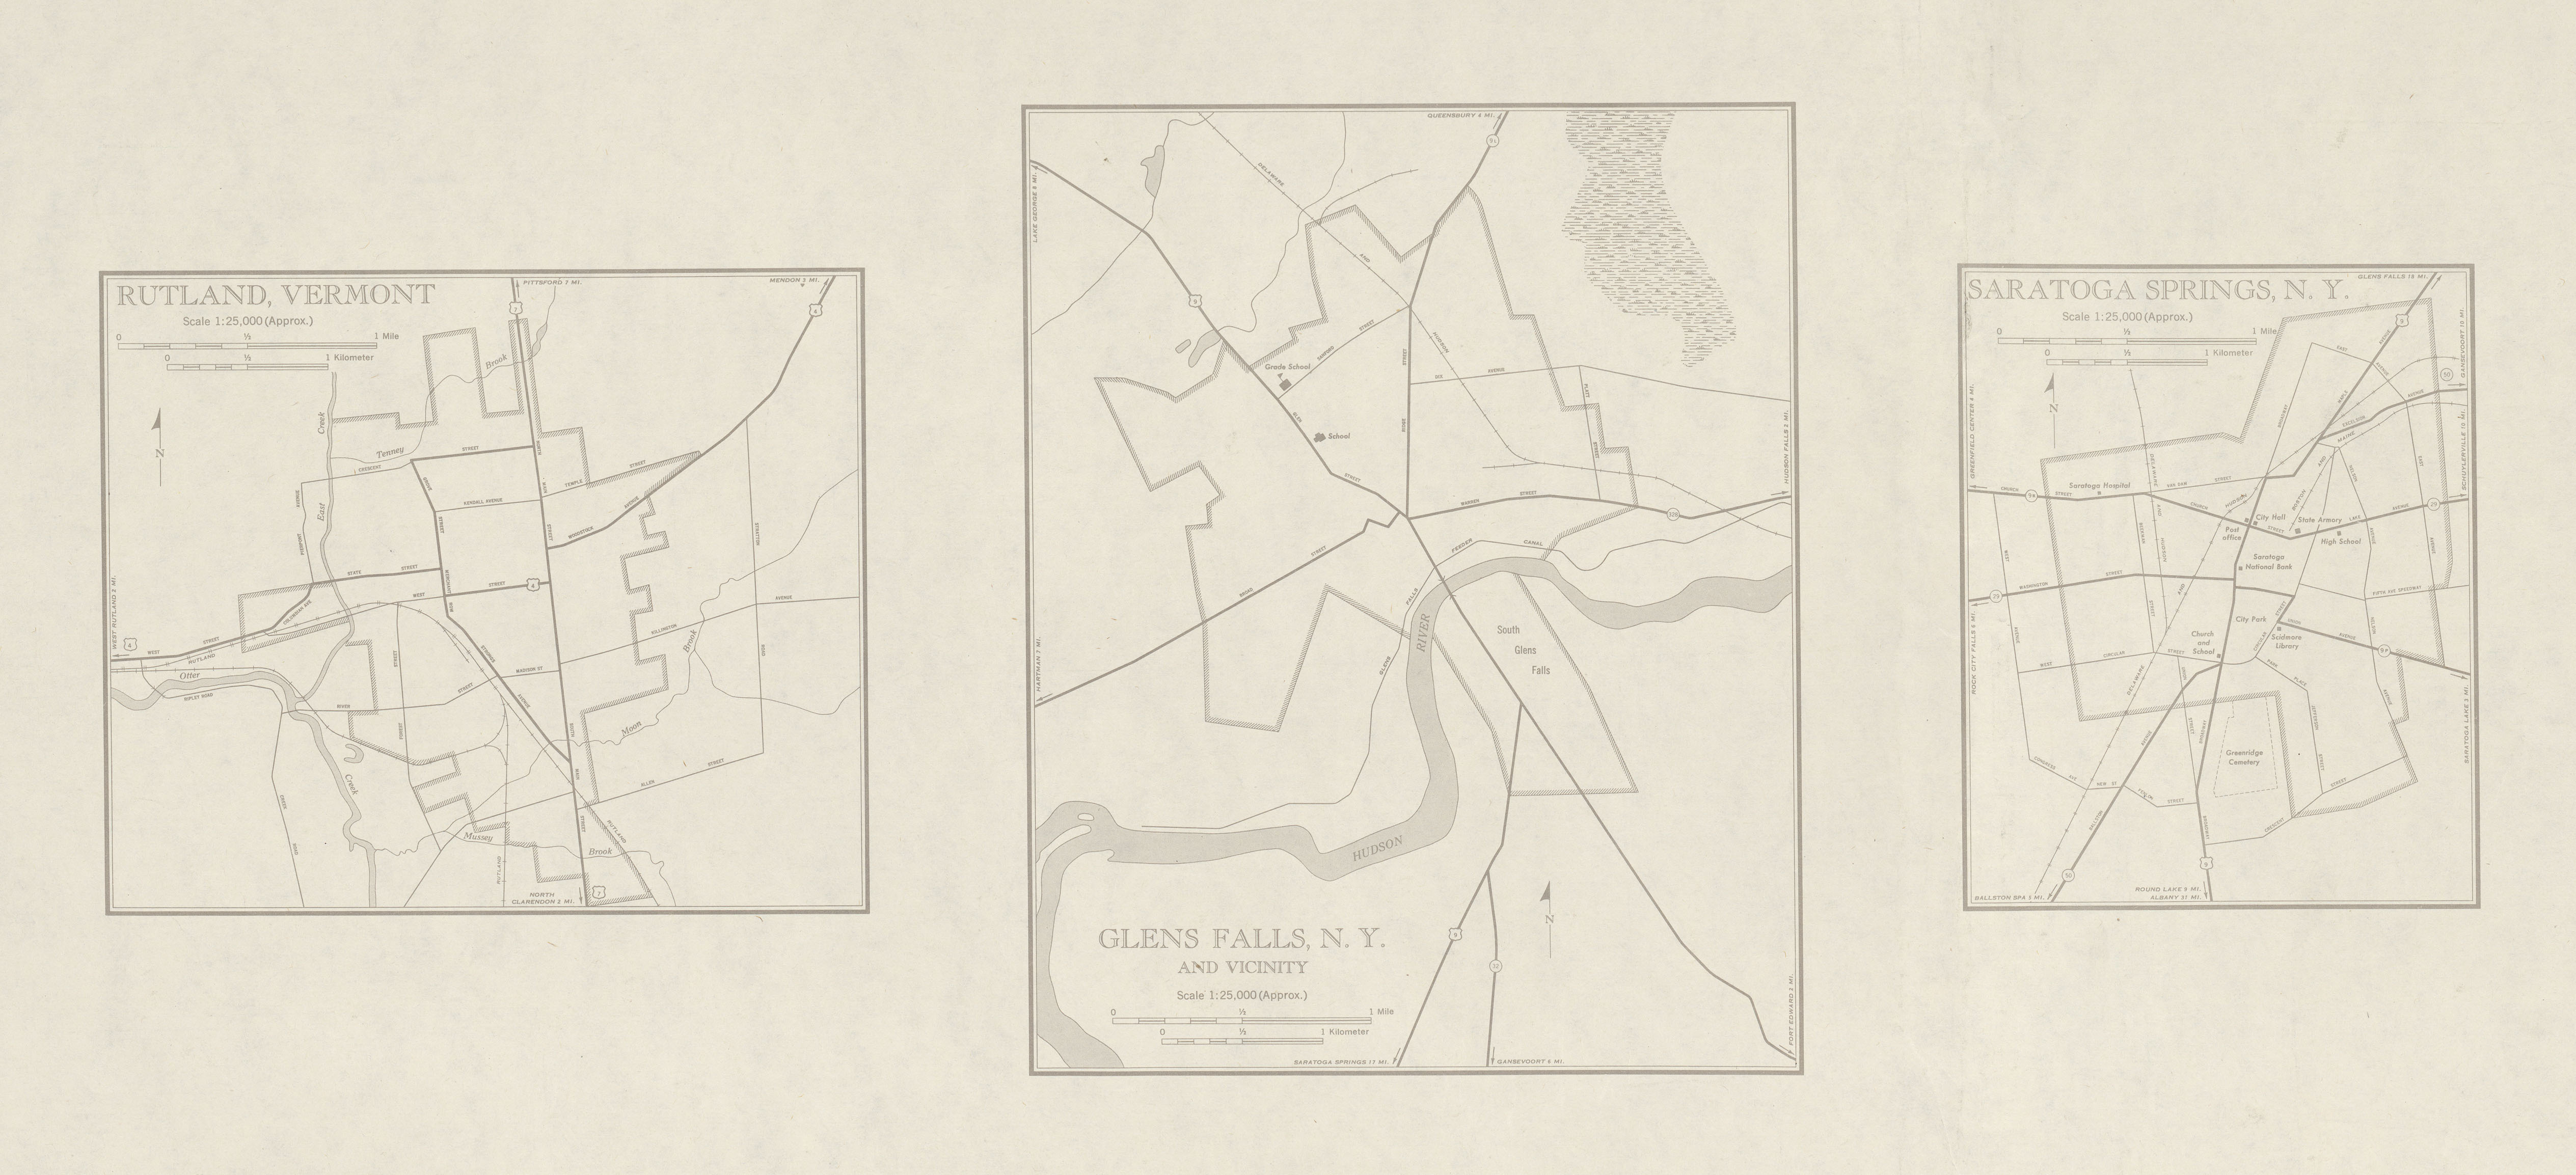 City Maps of Glens Falls, Saratoga Springs, New York and Rutland, Vermont, United States 1948